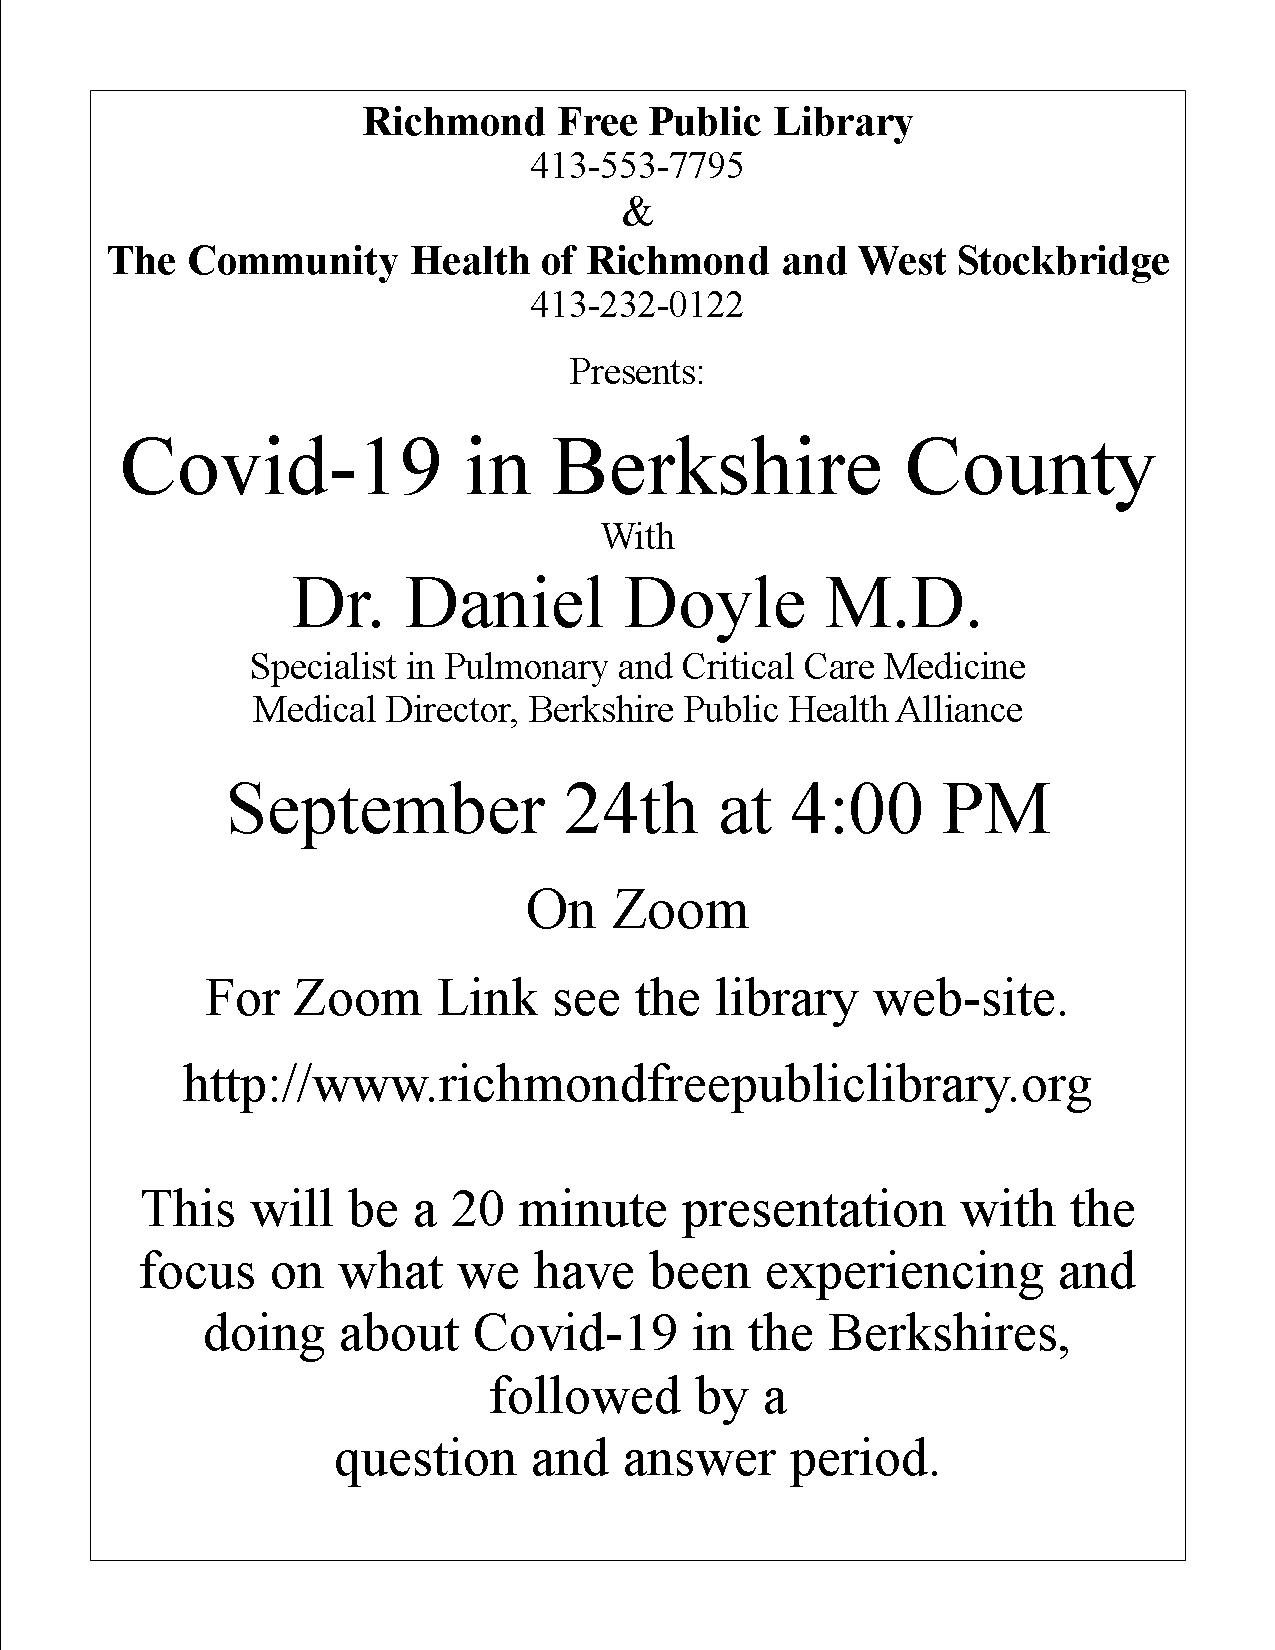 """Richmond Free Public Library presents """"Covid-19 in Berkshire County with Dr. Daniel Doyle M.D. and Emilie Jarrett RN, BSN"""""""